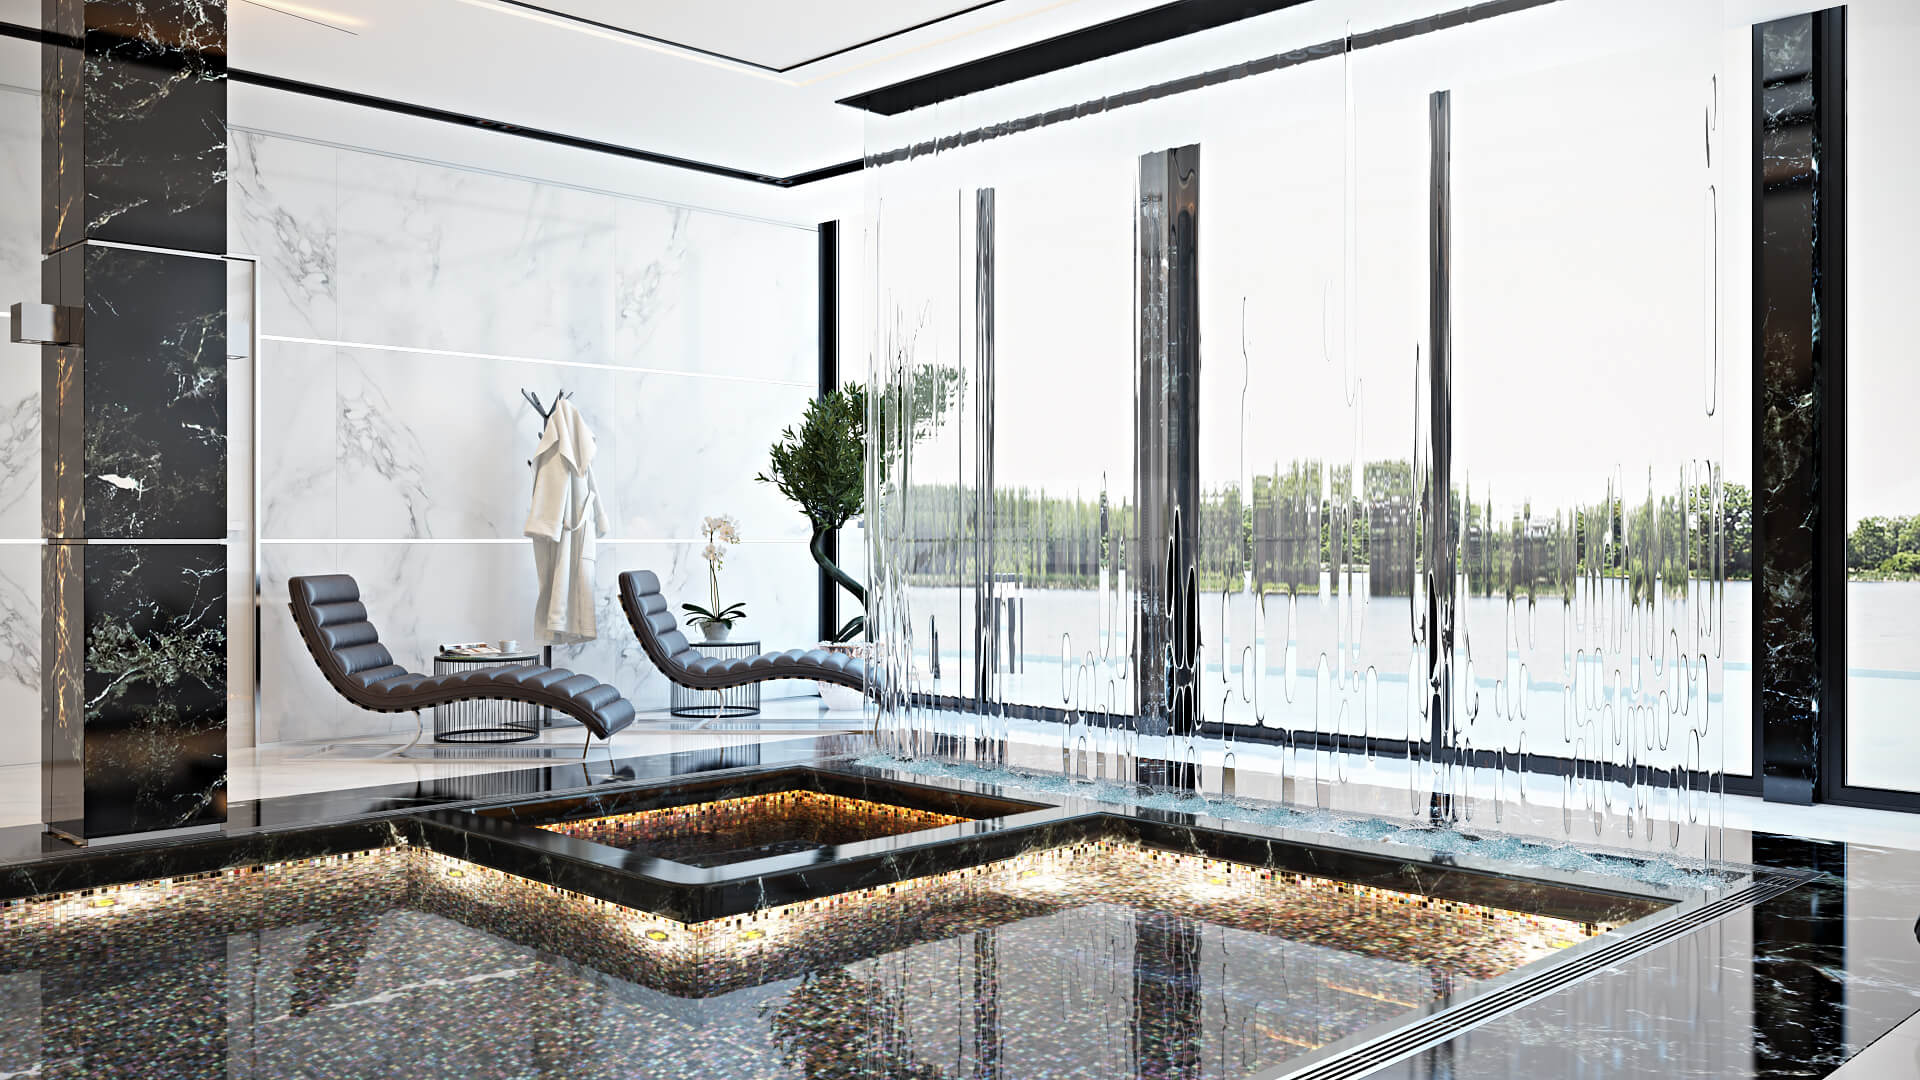 High-End 3D Interior Renderings For A Swimming Pool With A Relaxation Zone By Panoramic Windows View01